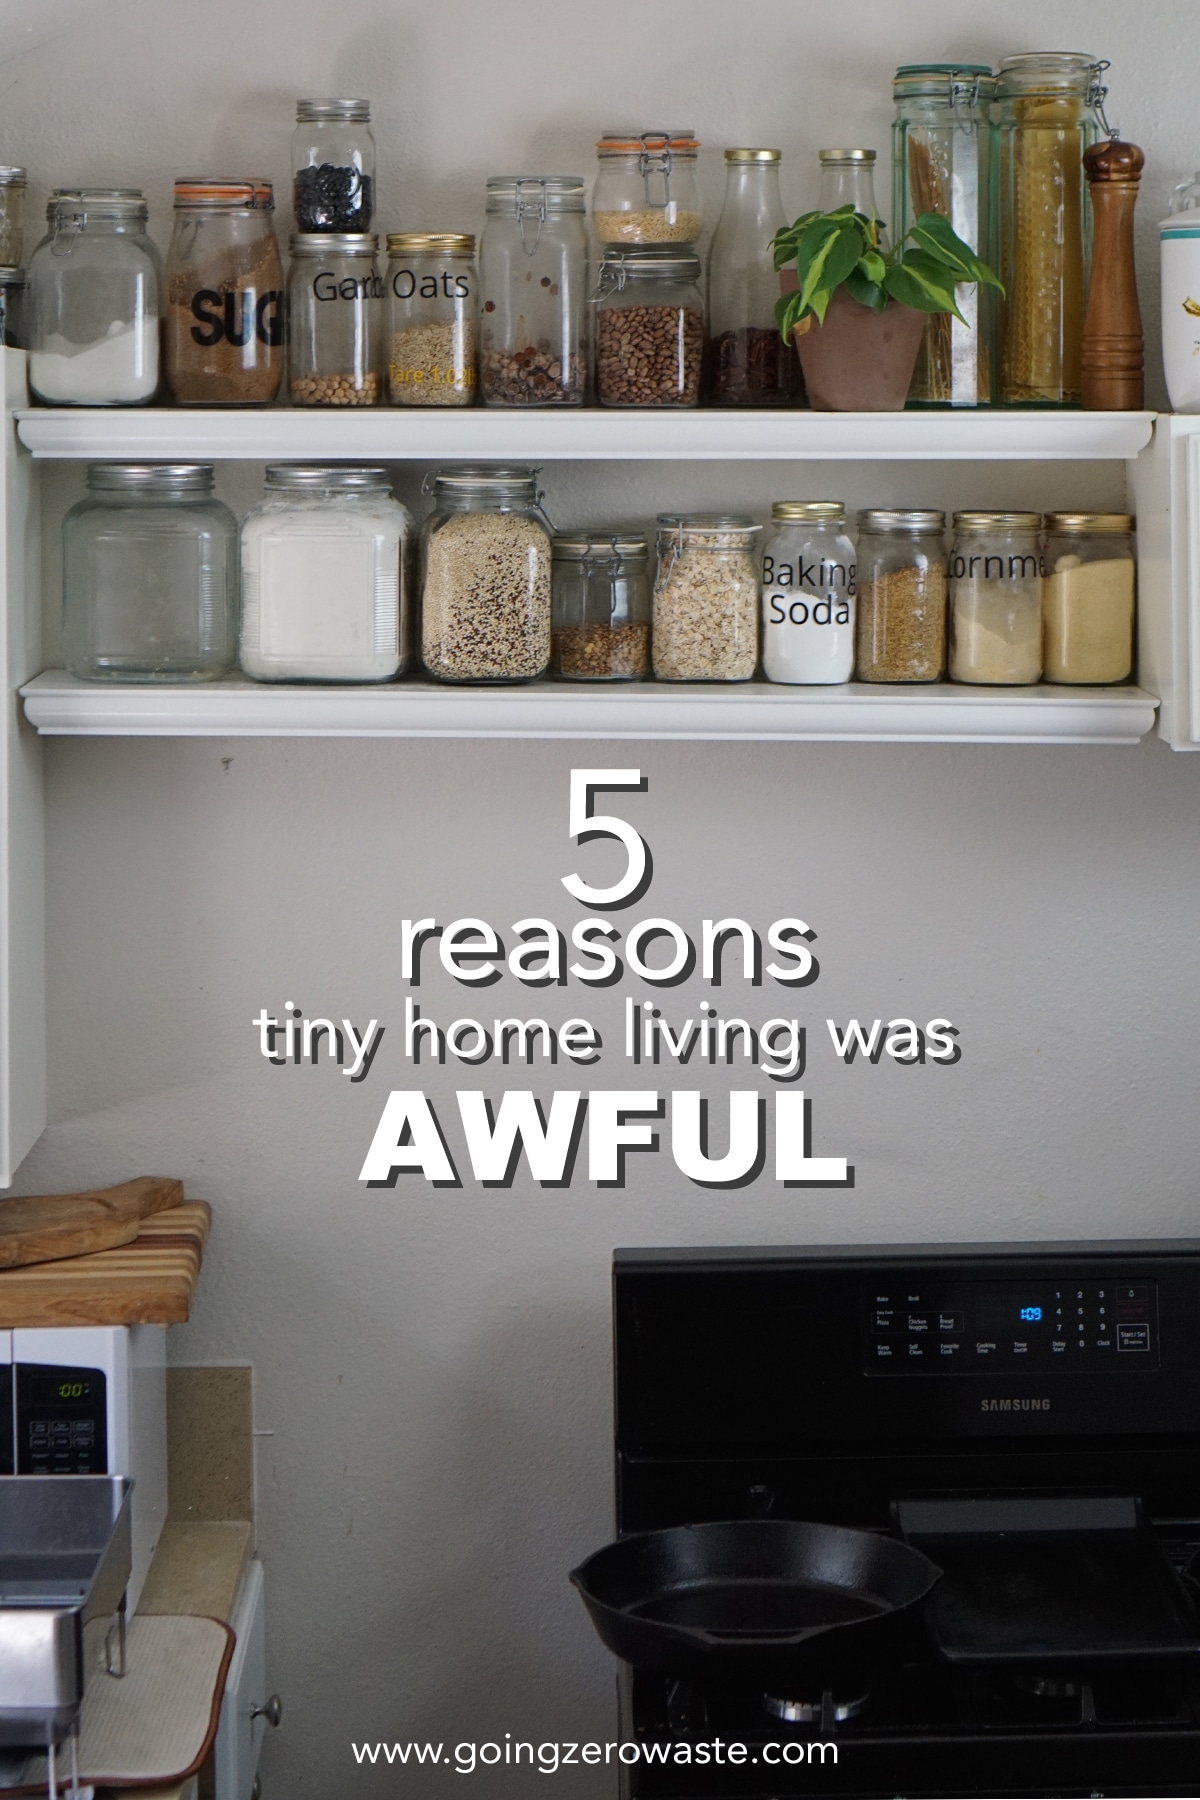 5 Reasons Tiny Home Living Was Awful from www.goingzerowaste.com #zerowaste #ecofriendly #gogreen #sustainable #tinyhome